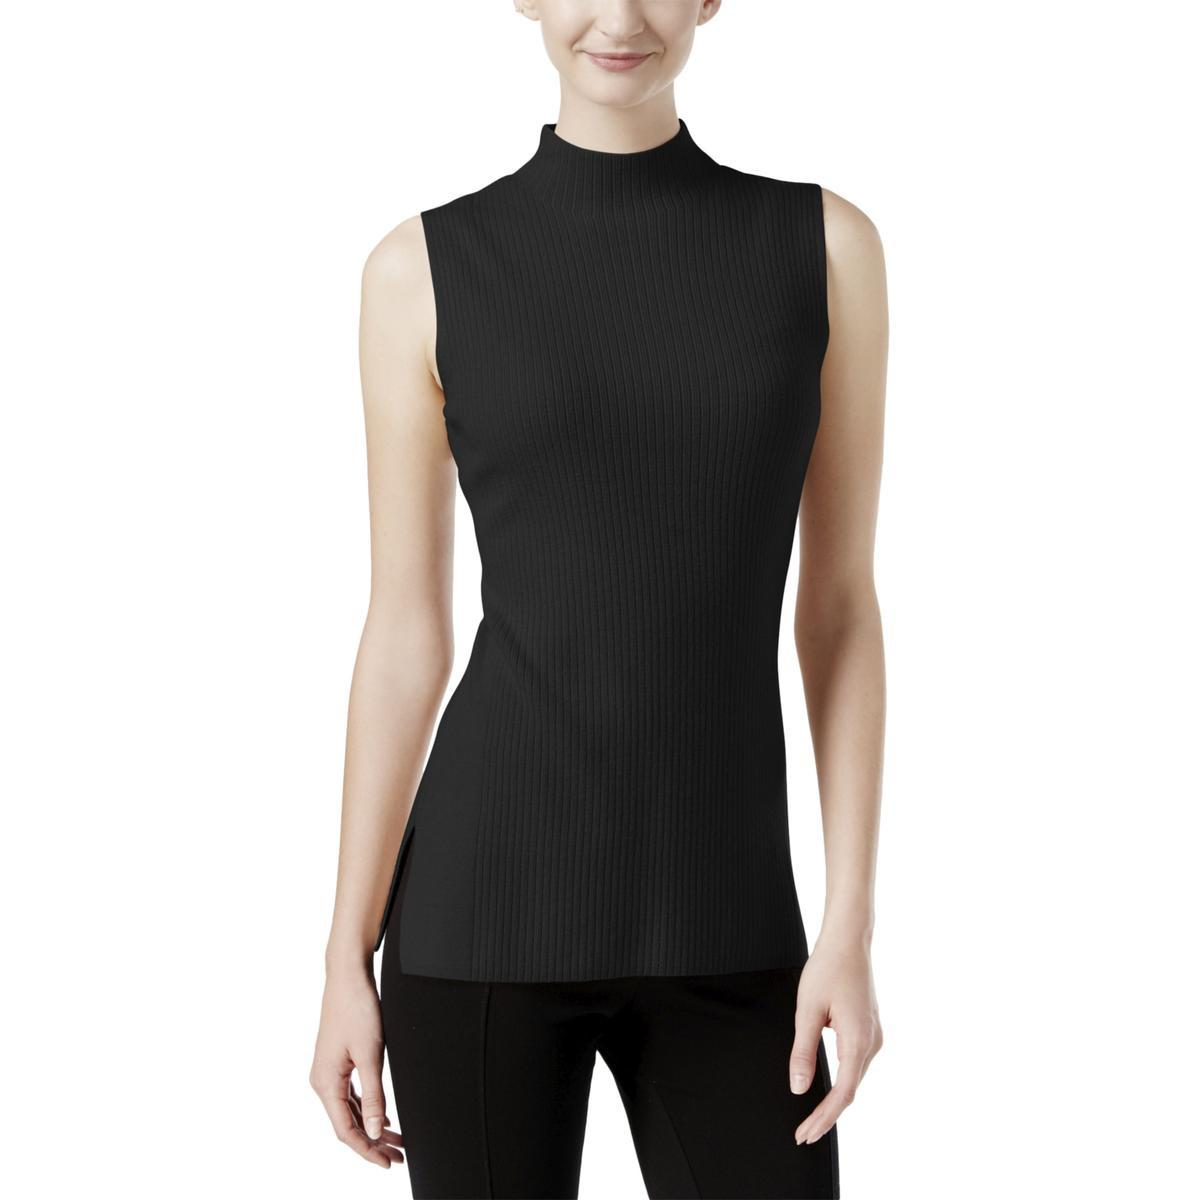 153c6be403ff5 Lyst - Calvin Klein 205W39Nyc Ribbed Knit Sleeveless Mock Turtleneck ...